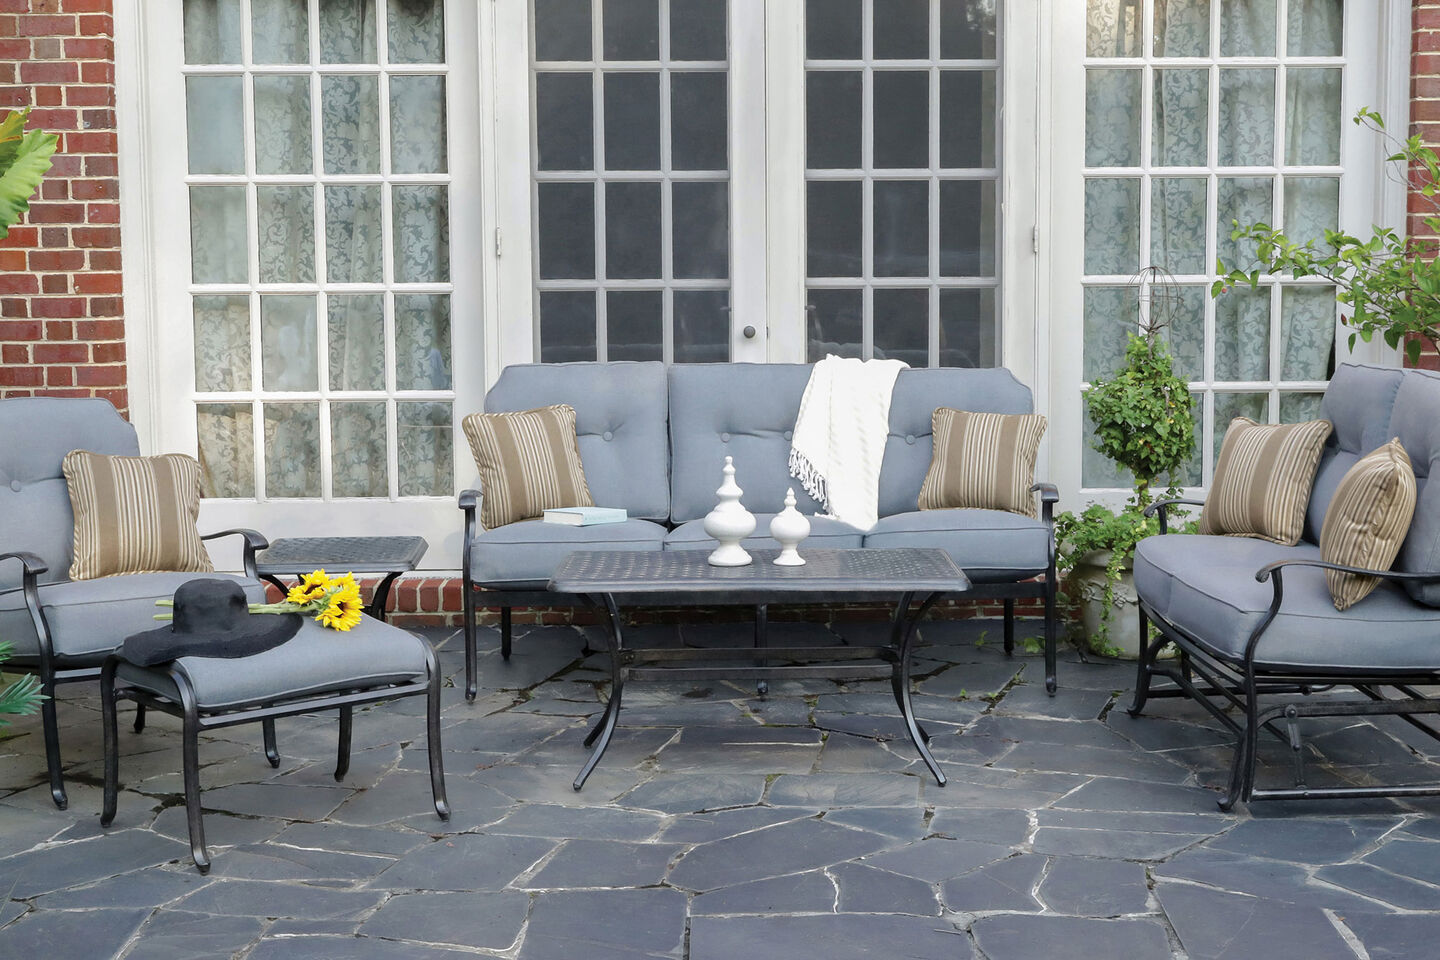 Madison by Apricity lounge furniture with coffee table on gray stone patio